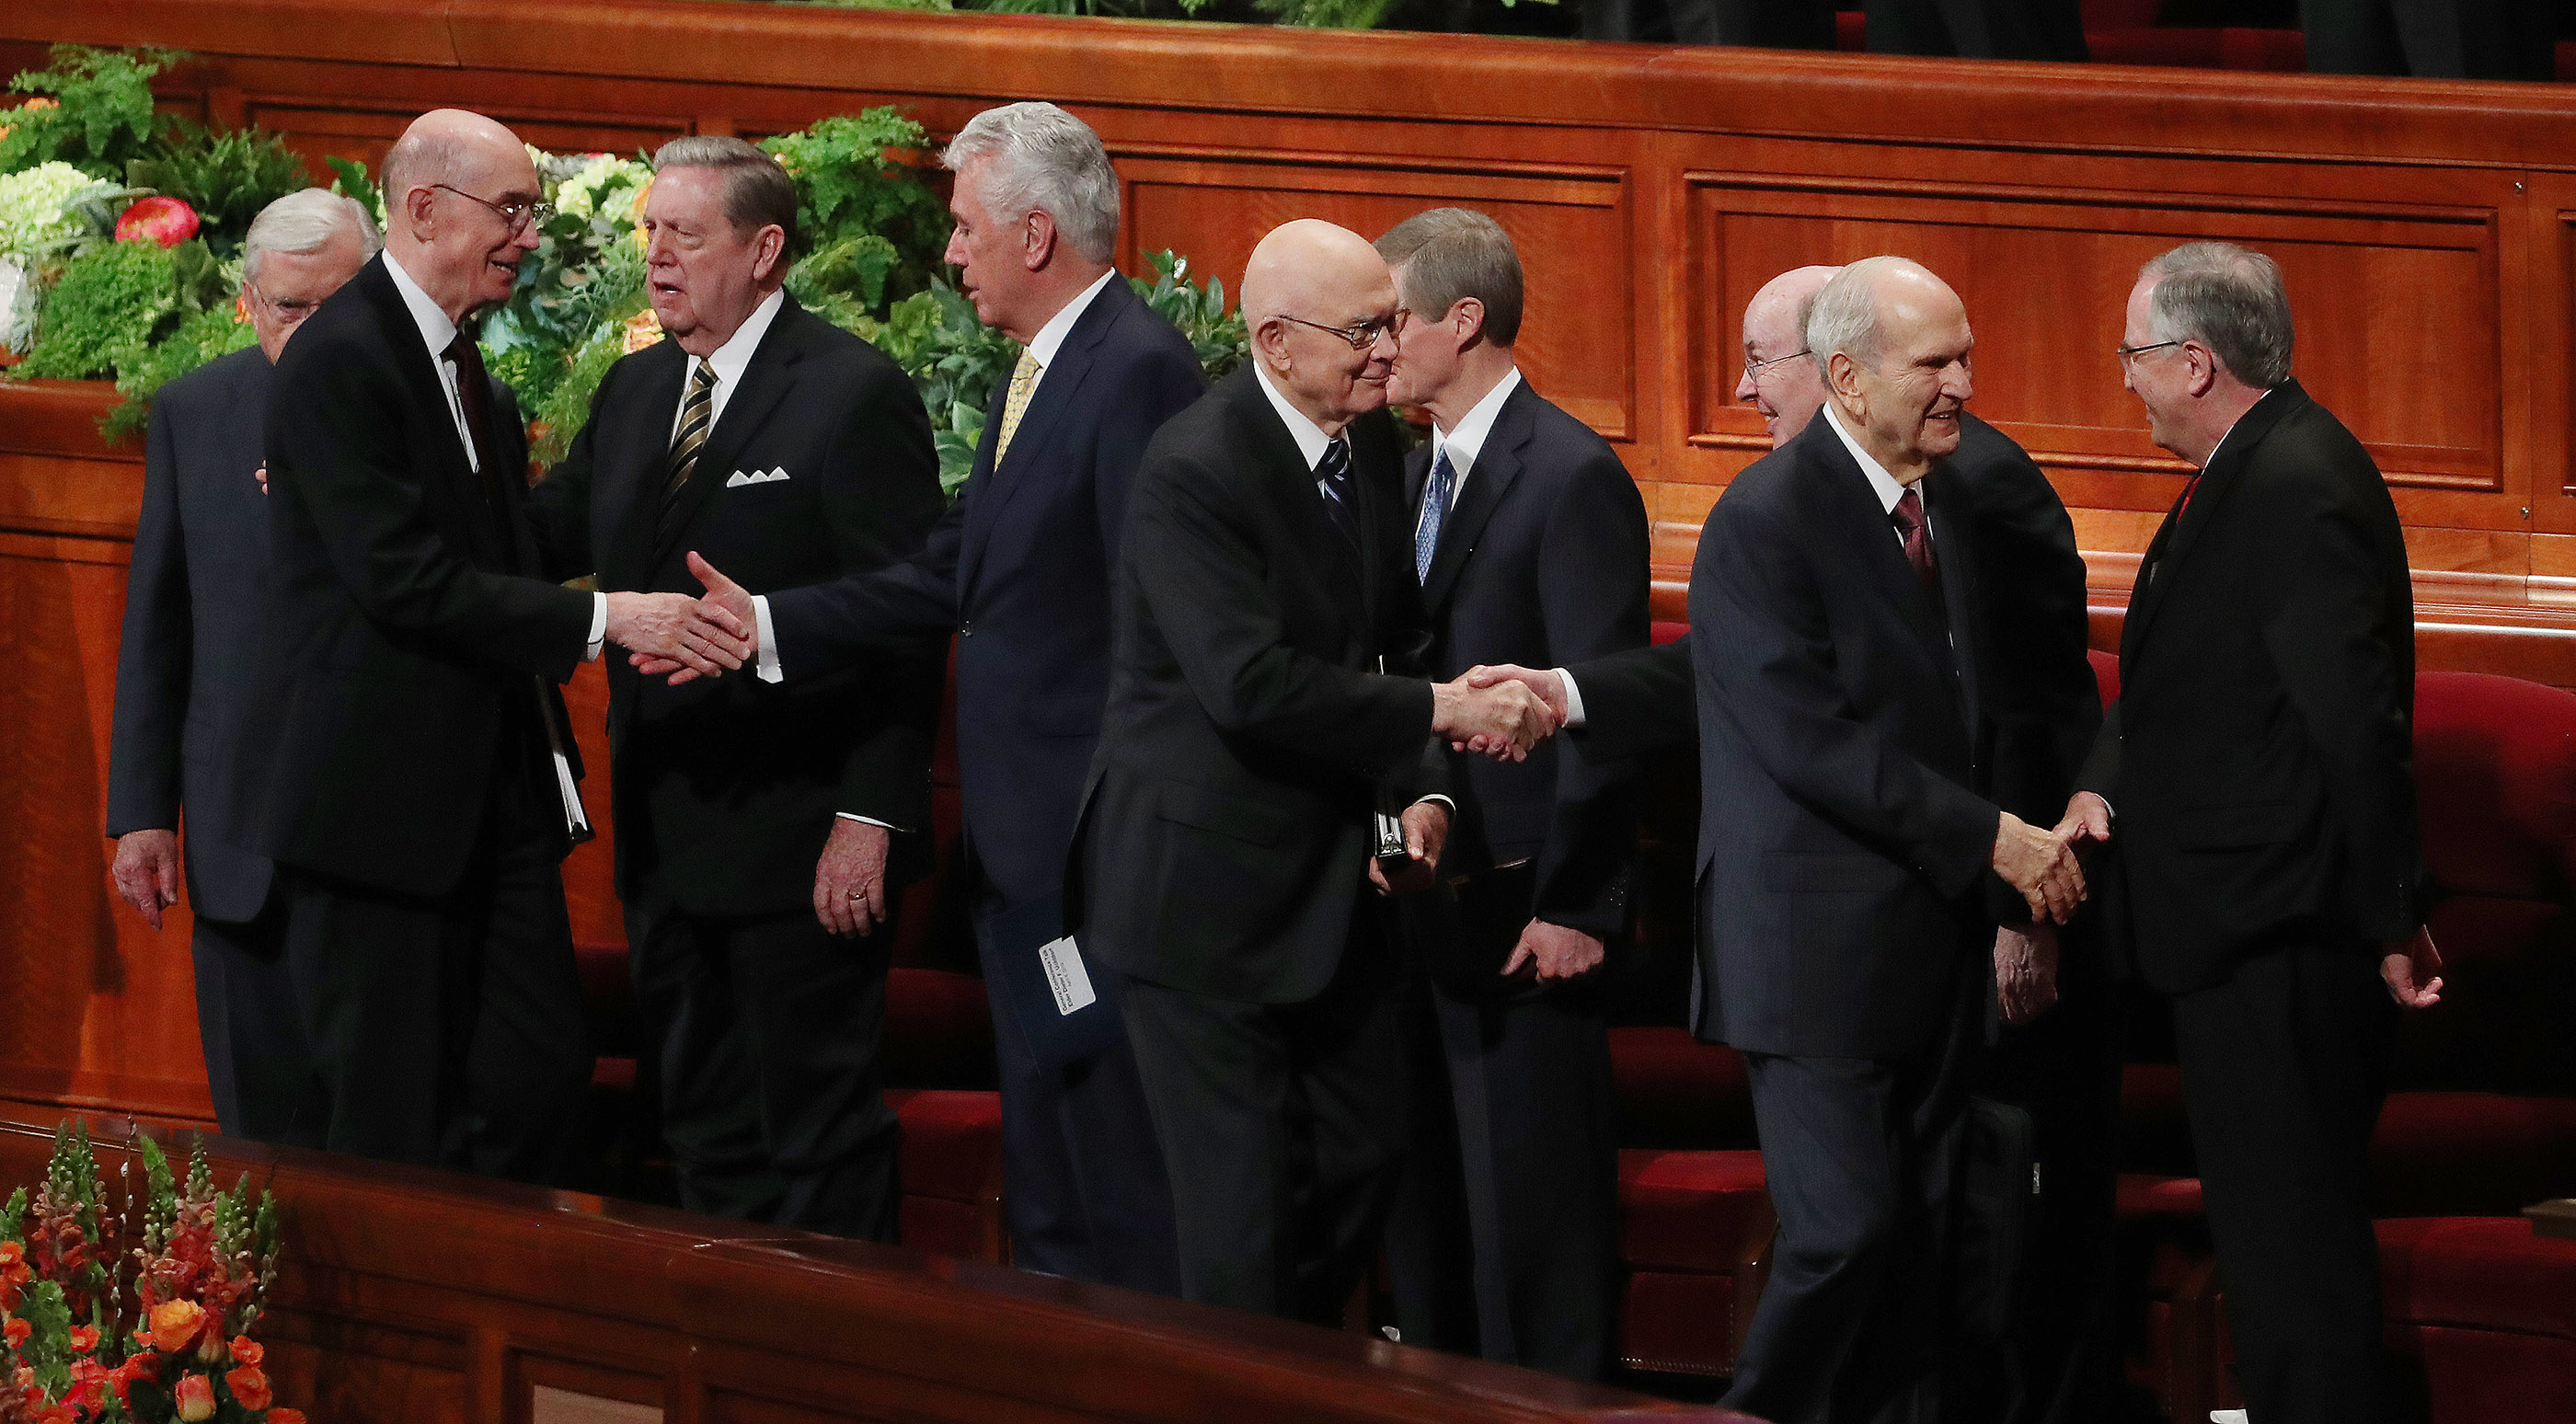 President Russell M. Nelson of The Church of Jesus Christ of Latter-day Saints, right, and his counselors, President Dallin H. Oaks, first counselor in the First Presidency, center, and President Henry B. Eyring, second counselor in the First Presidency, greet others after the first session to the 189th Annual General Conference of The Church of Jesus Christ of Latter-day Saints in Salt Lake City on Saturday, April 6, 2019.